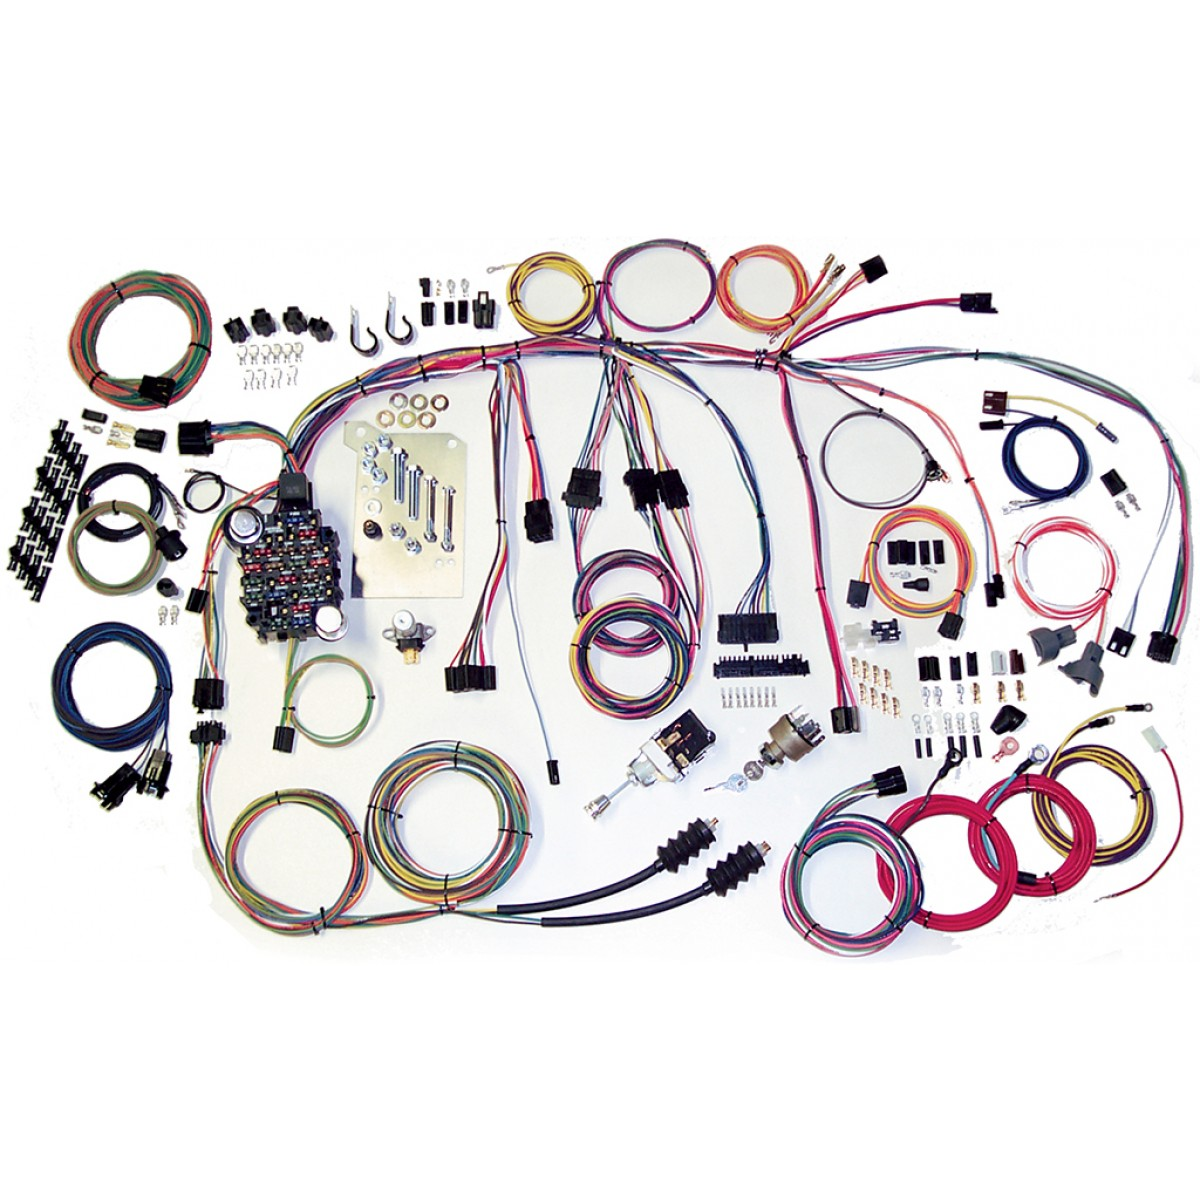 Wiring Harness Chevy Truck Basic Diagram Painless Kits C10 Complete Kit 1960 1966 Rh Code510 Com 1950 1972